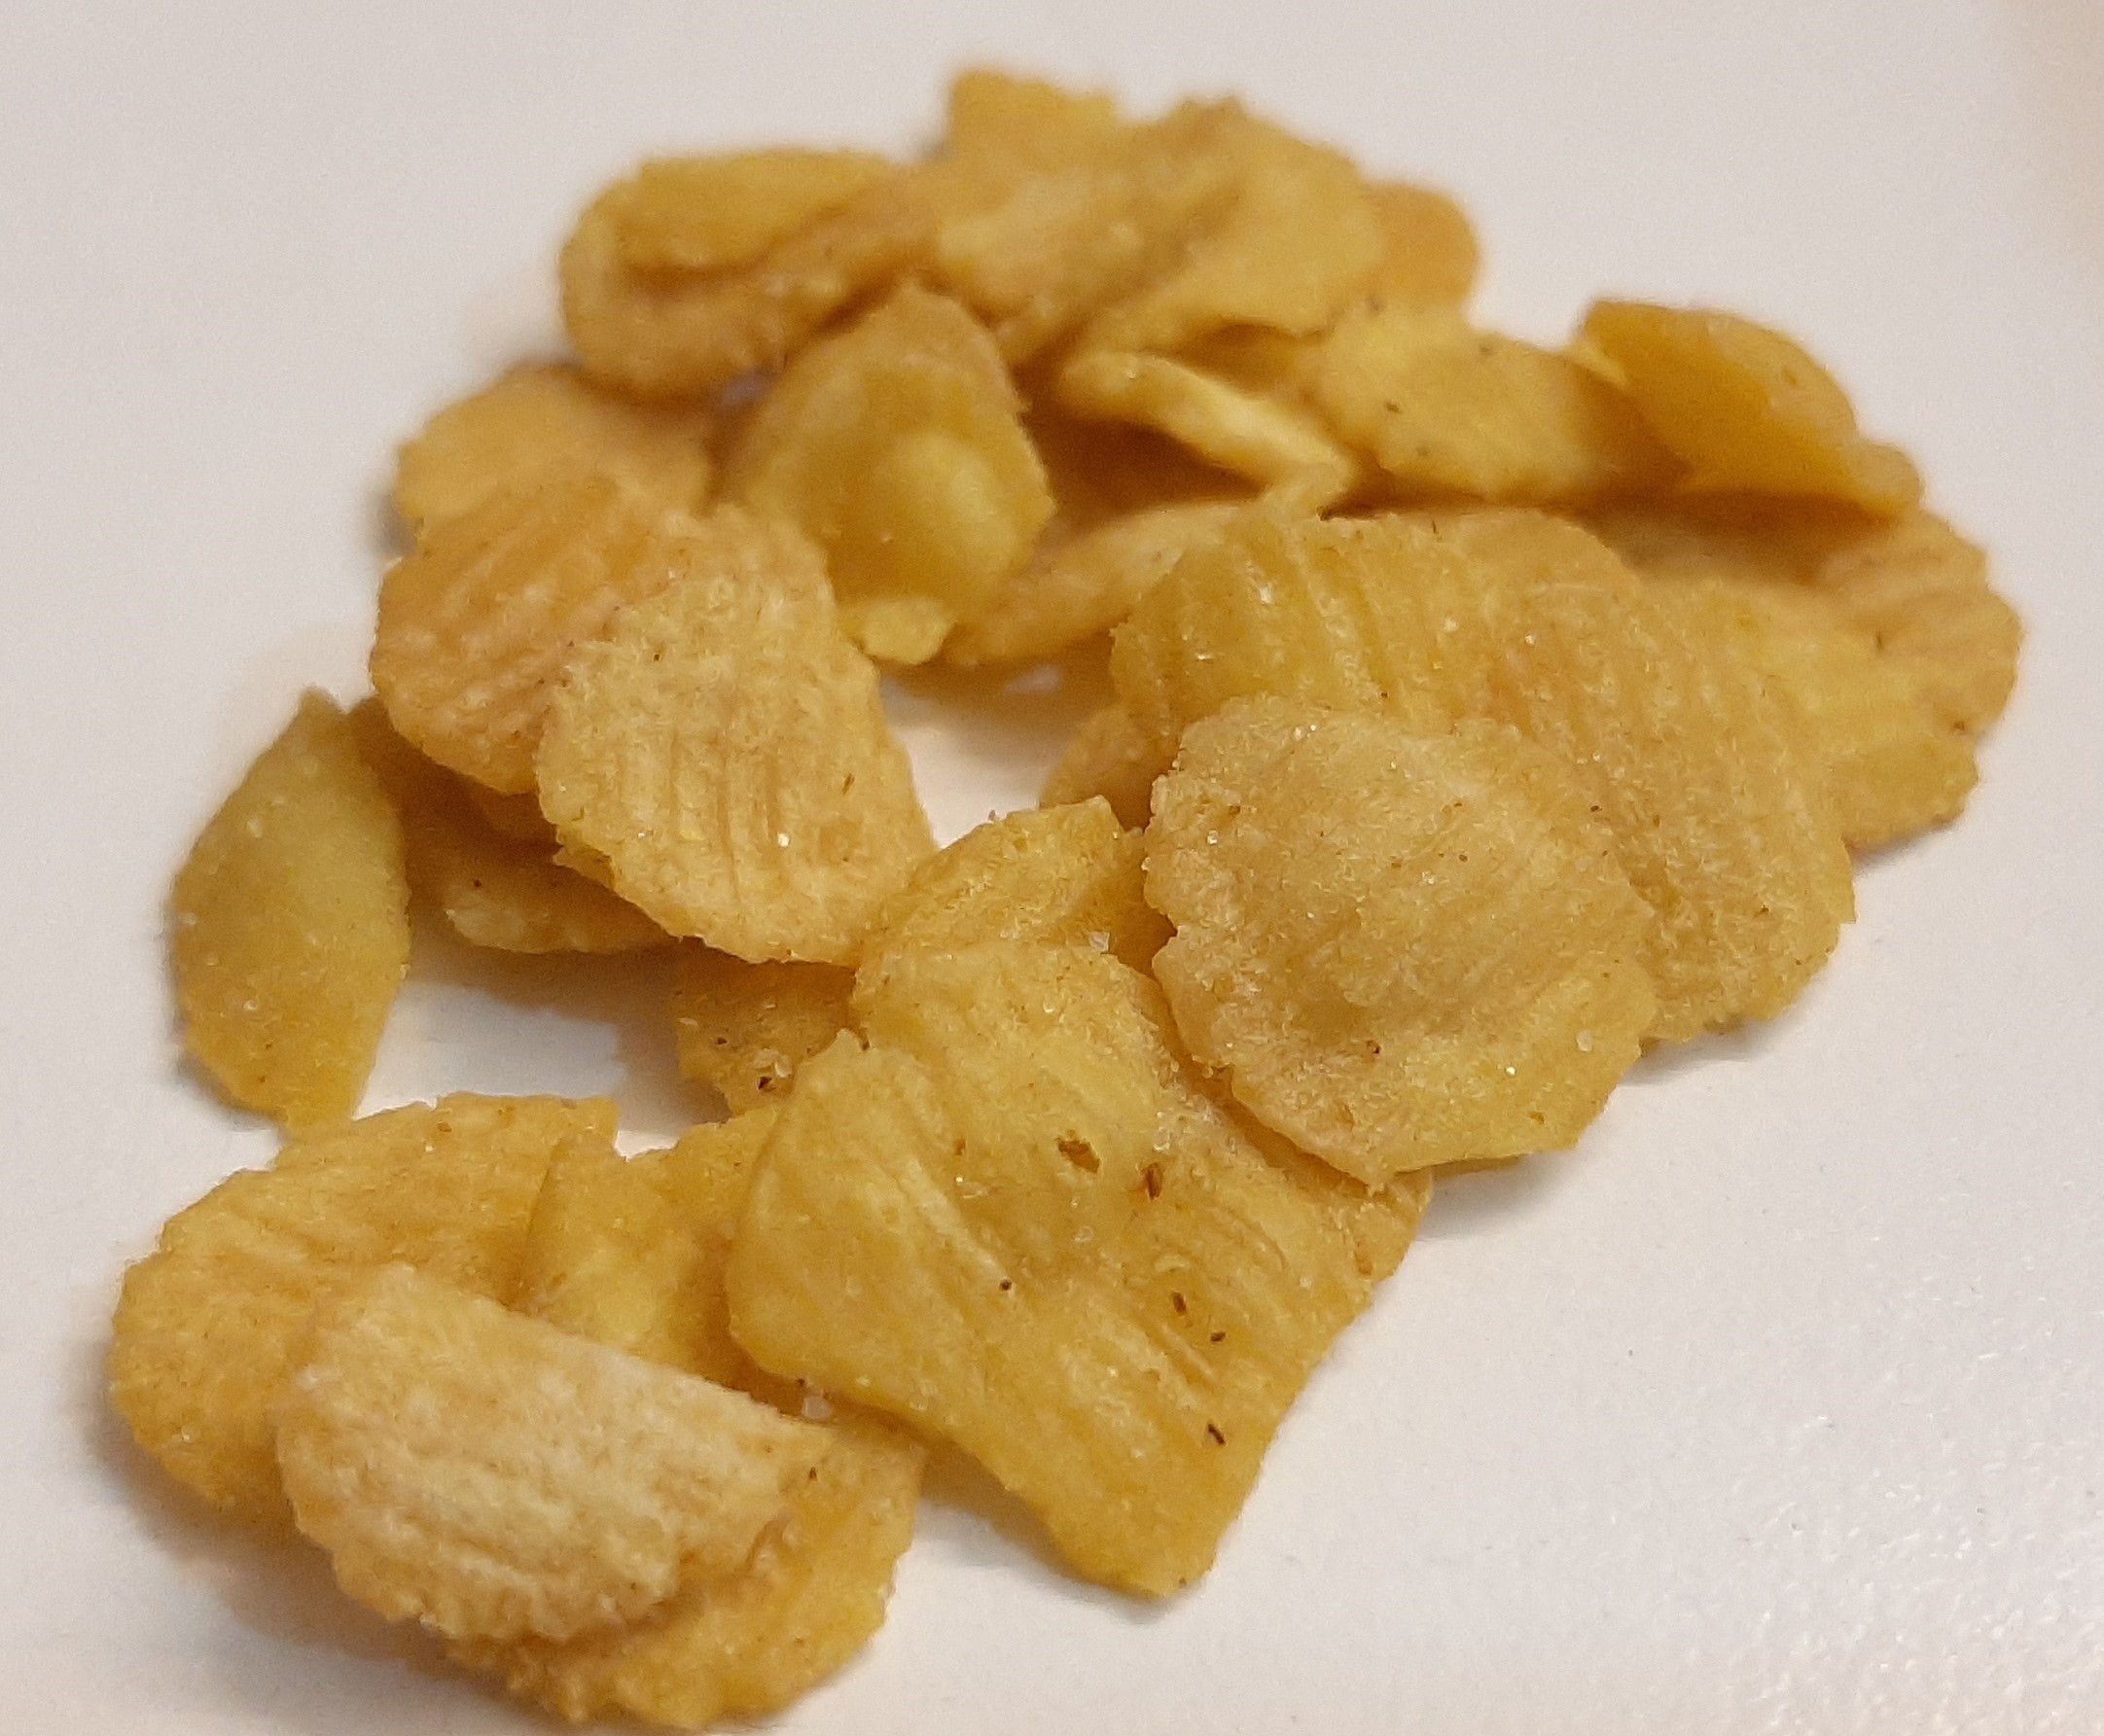 Whole Foods Chana Malai Roasted Snack: #FirstImpressions